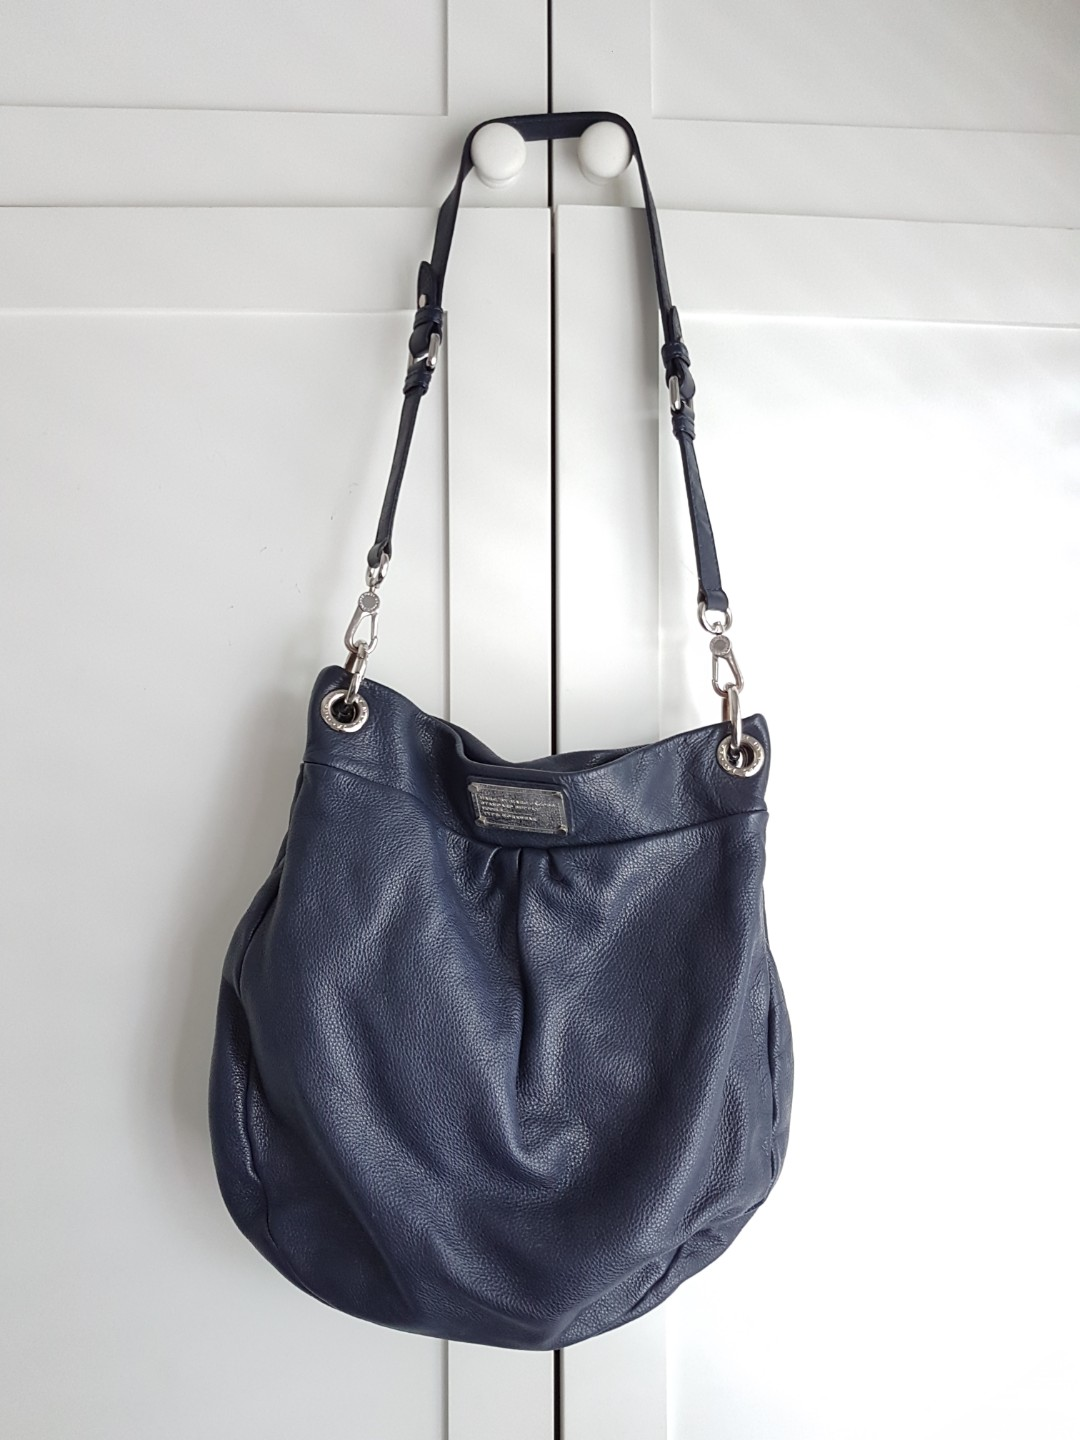 6237271bc7daf Source · Marc by Marc Jacobs blue leather hobo bag Luxury Bags   Wallets